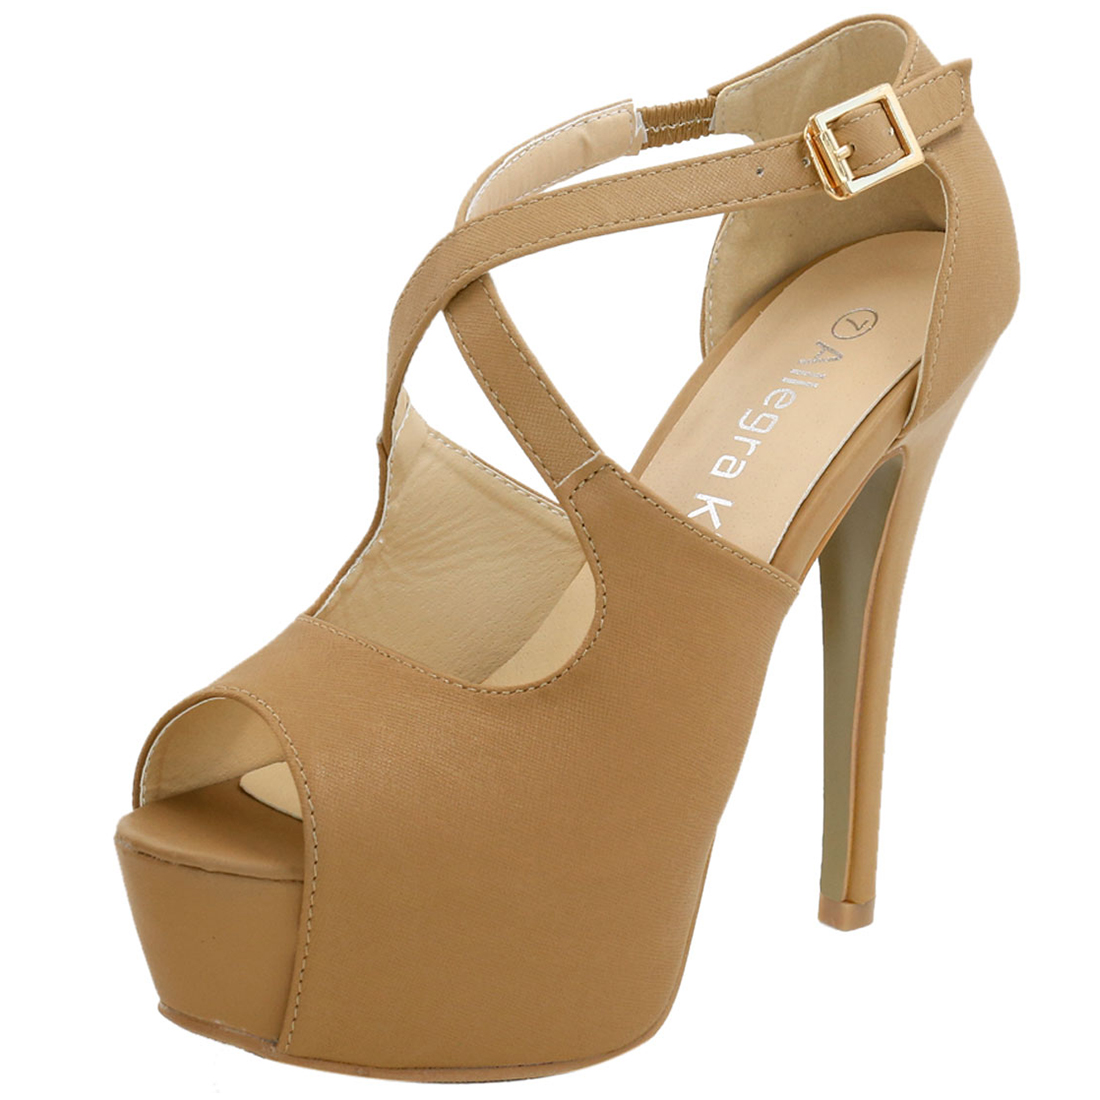 Woman Peep Toe High Heel Crisscross Straps Platform Sandals Tan US 7.5